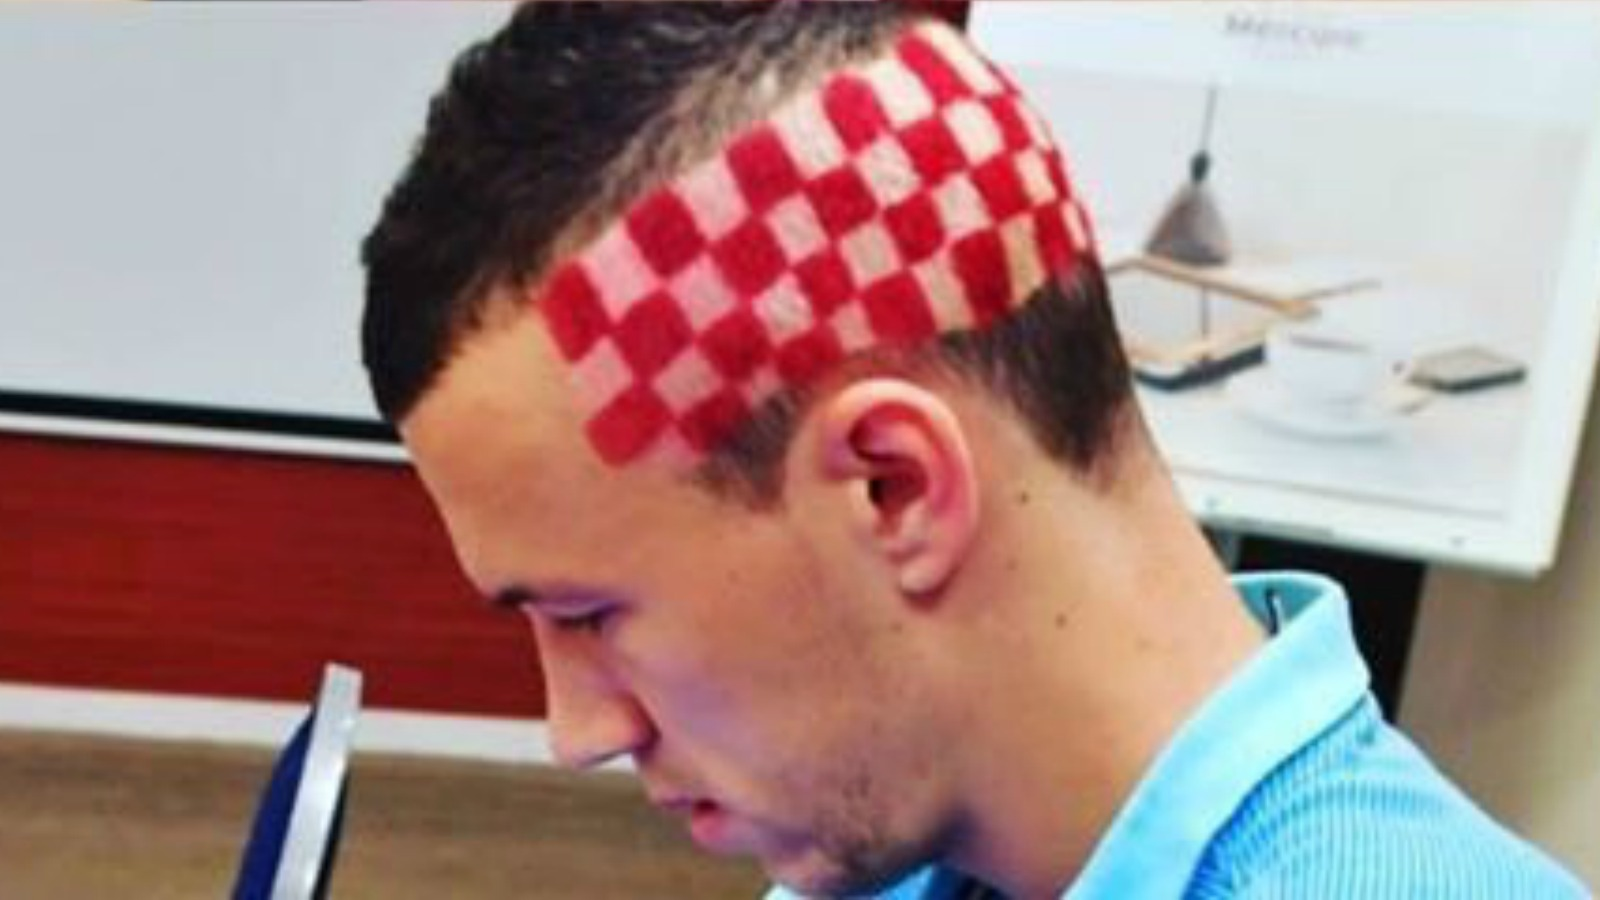 Check out Ivan Perisic's wild checkerboard haircut that looks like the Croatia kit